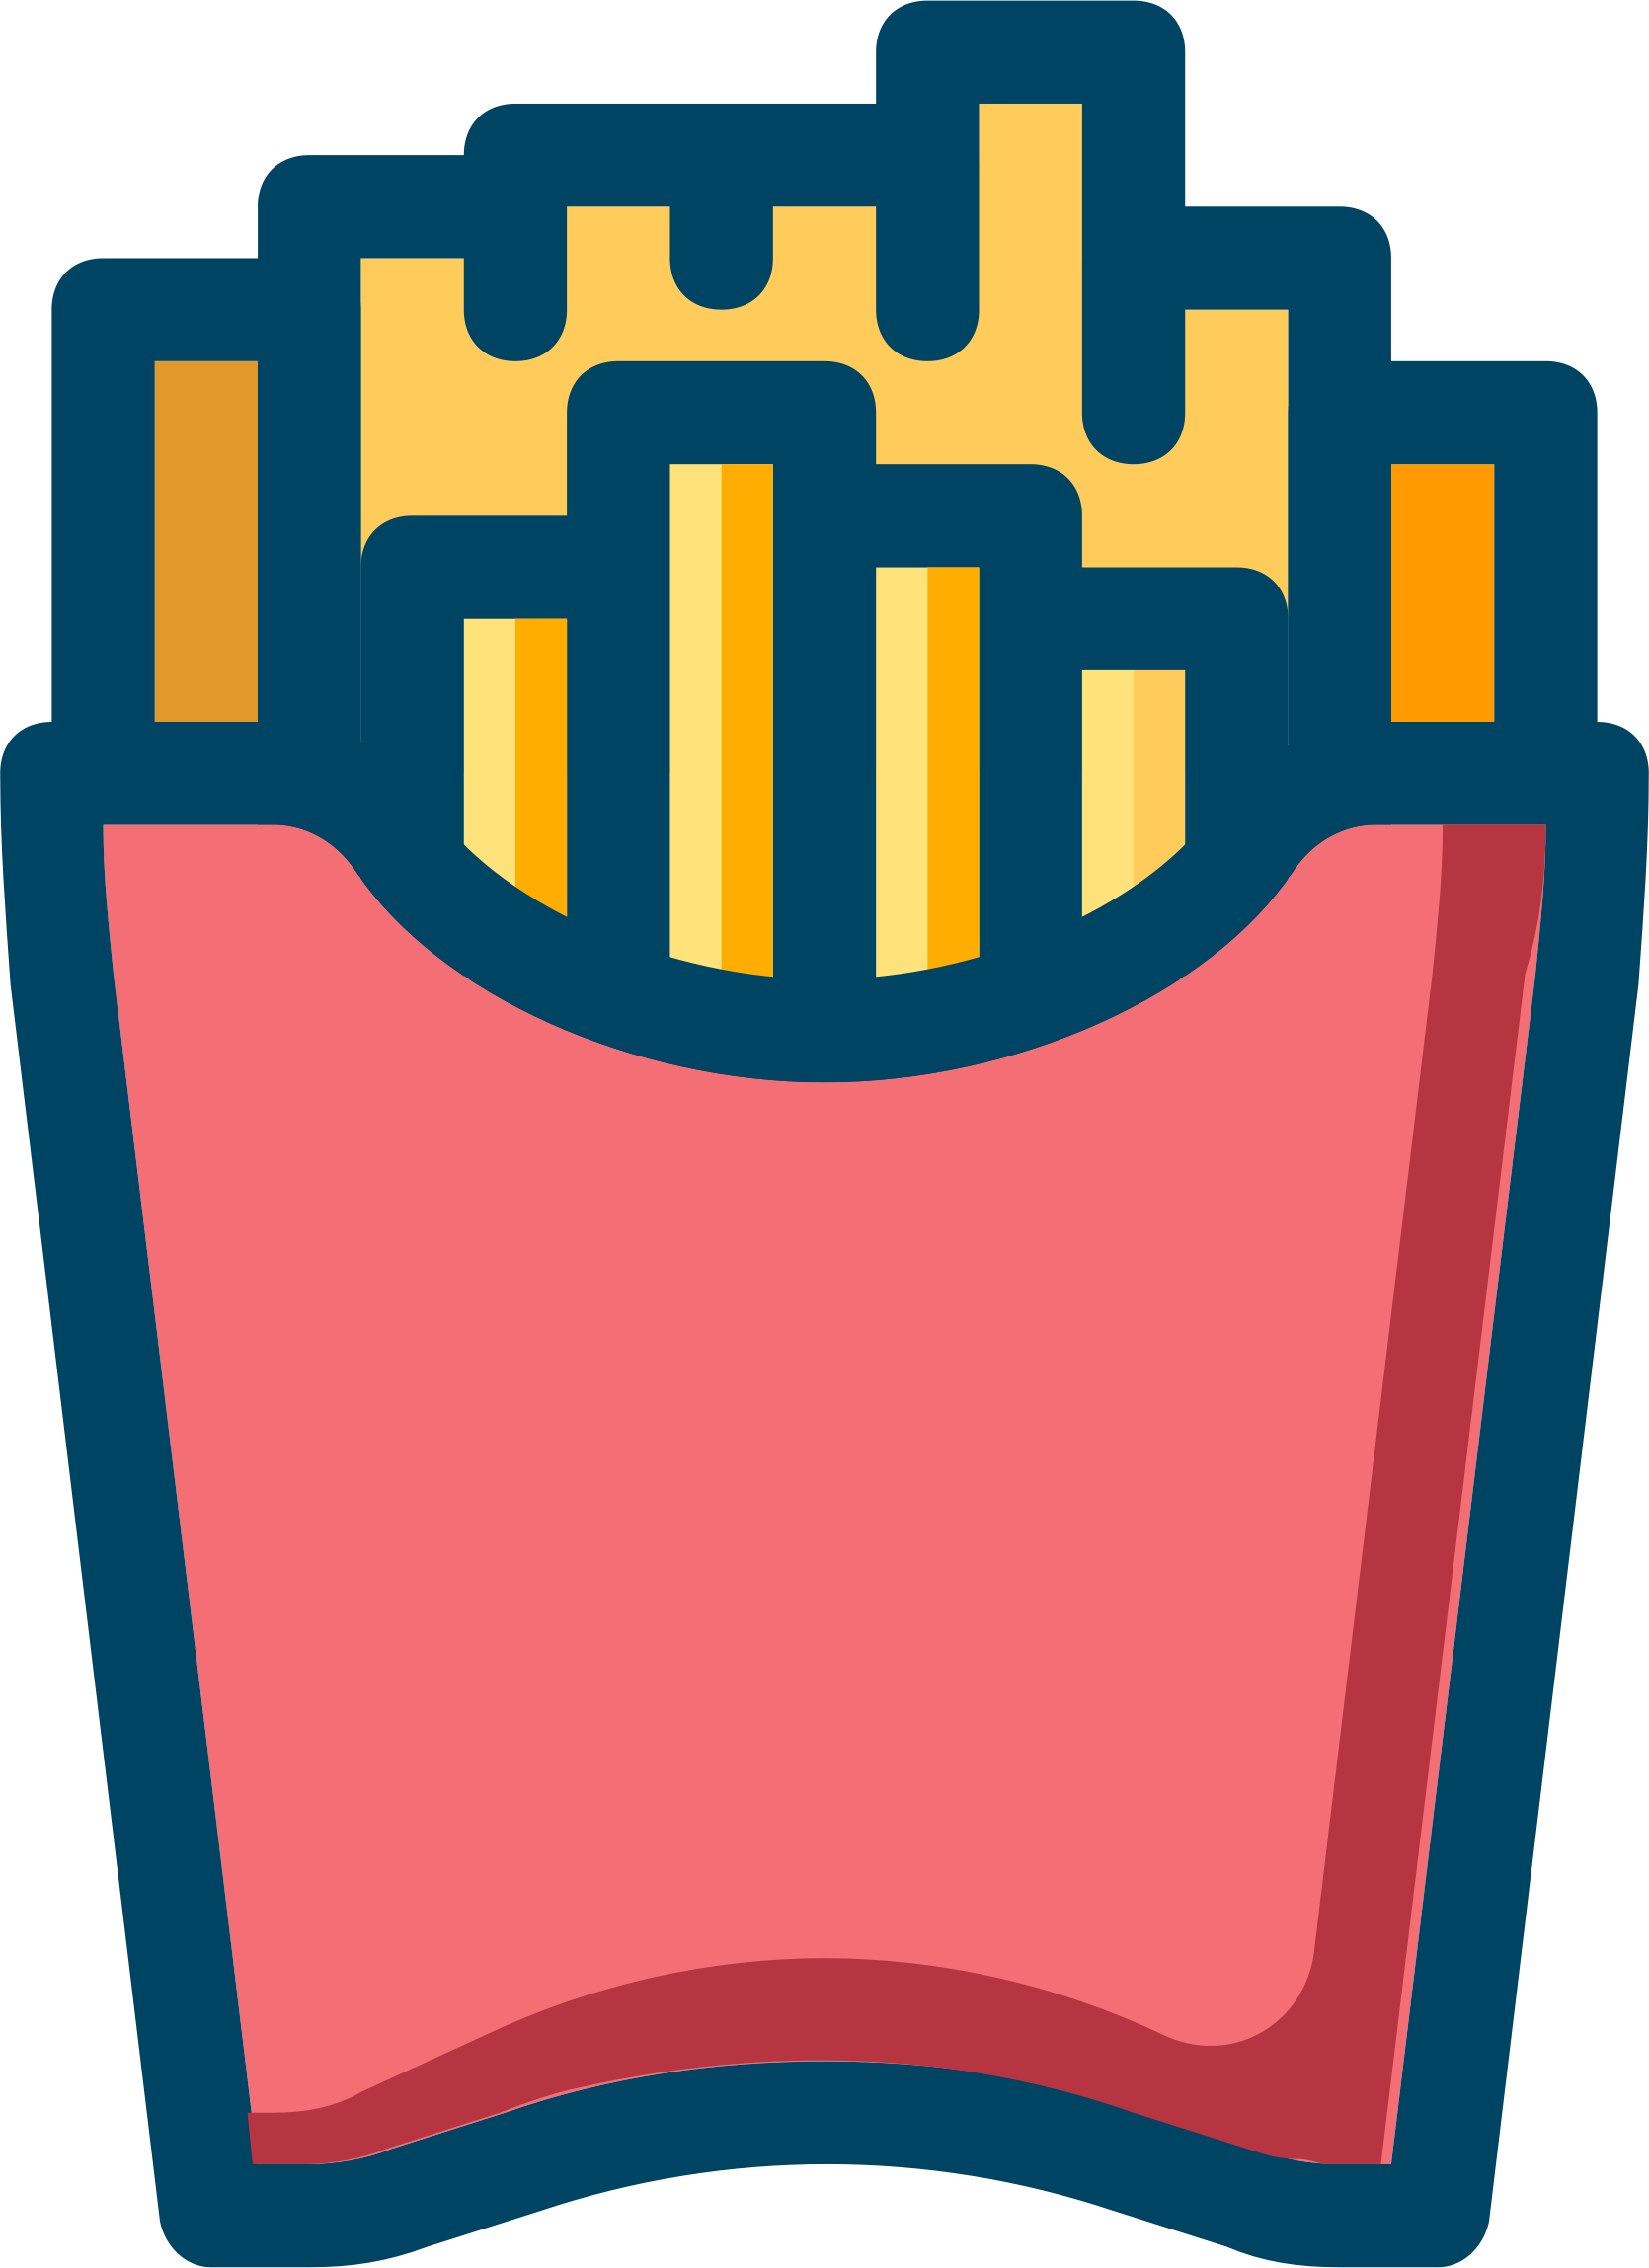 Fries clipart red. French big image png